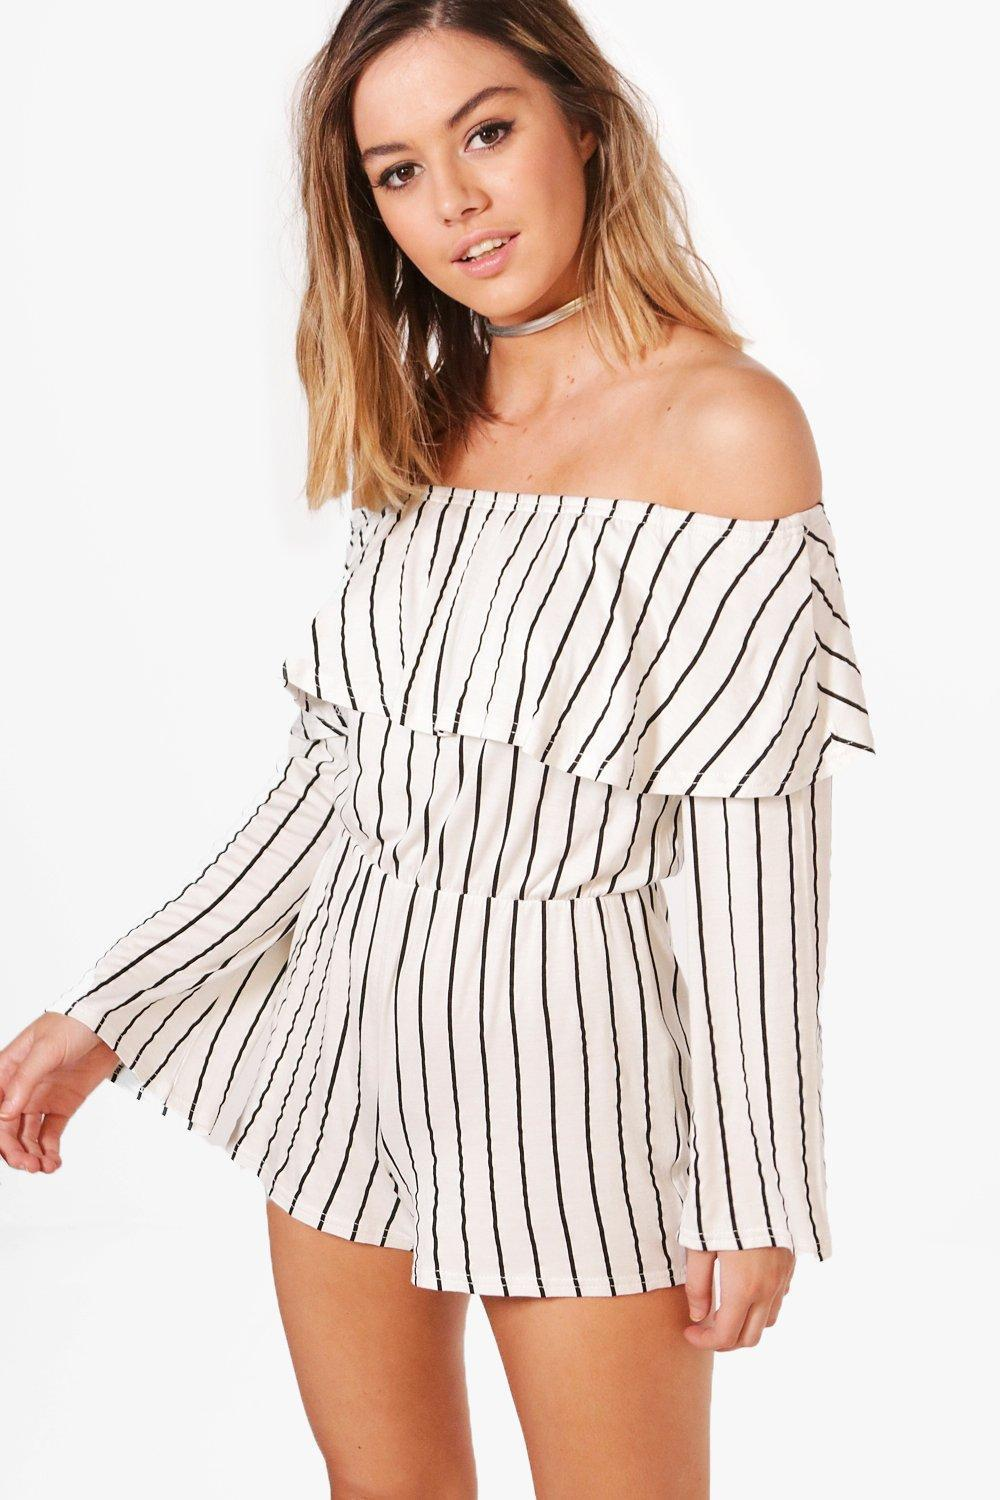 ccf3f068fa Lyst - Boohoo Petite Zoe Frill Stripe Off The Shoulder Playsuit in White